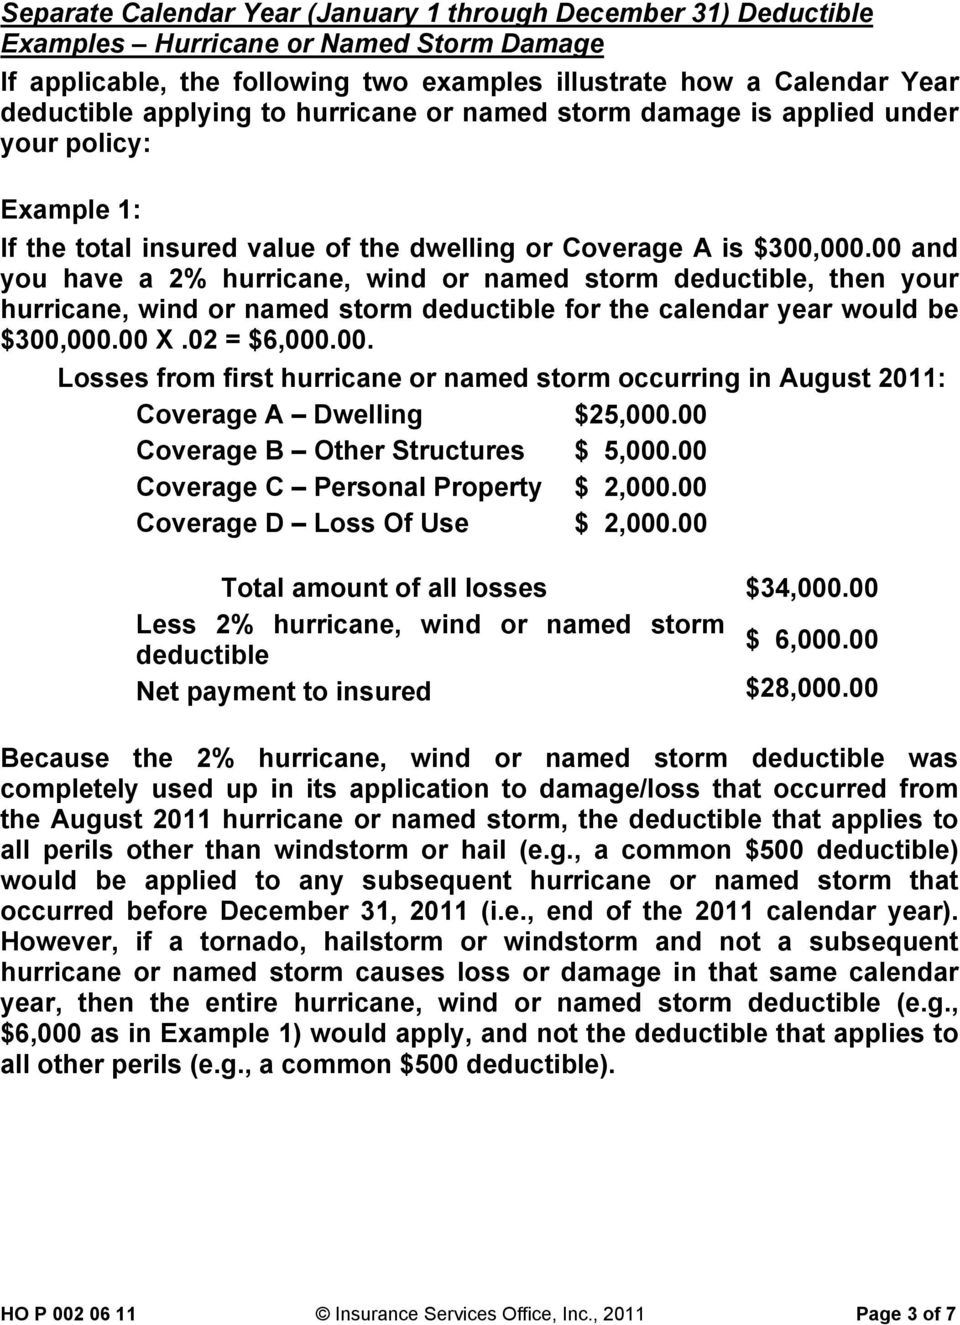 00 and you have a 2% hurricane, wind or named storm deductible, then your hurricane, wind or named storm deductible for the calendar year would be $300,000.00 X.02 = $6,000.00. Losses from first hurricane or named storm occurring in August 2011: Coverage A Dwelling $25,000.